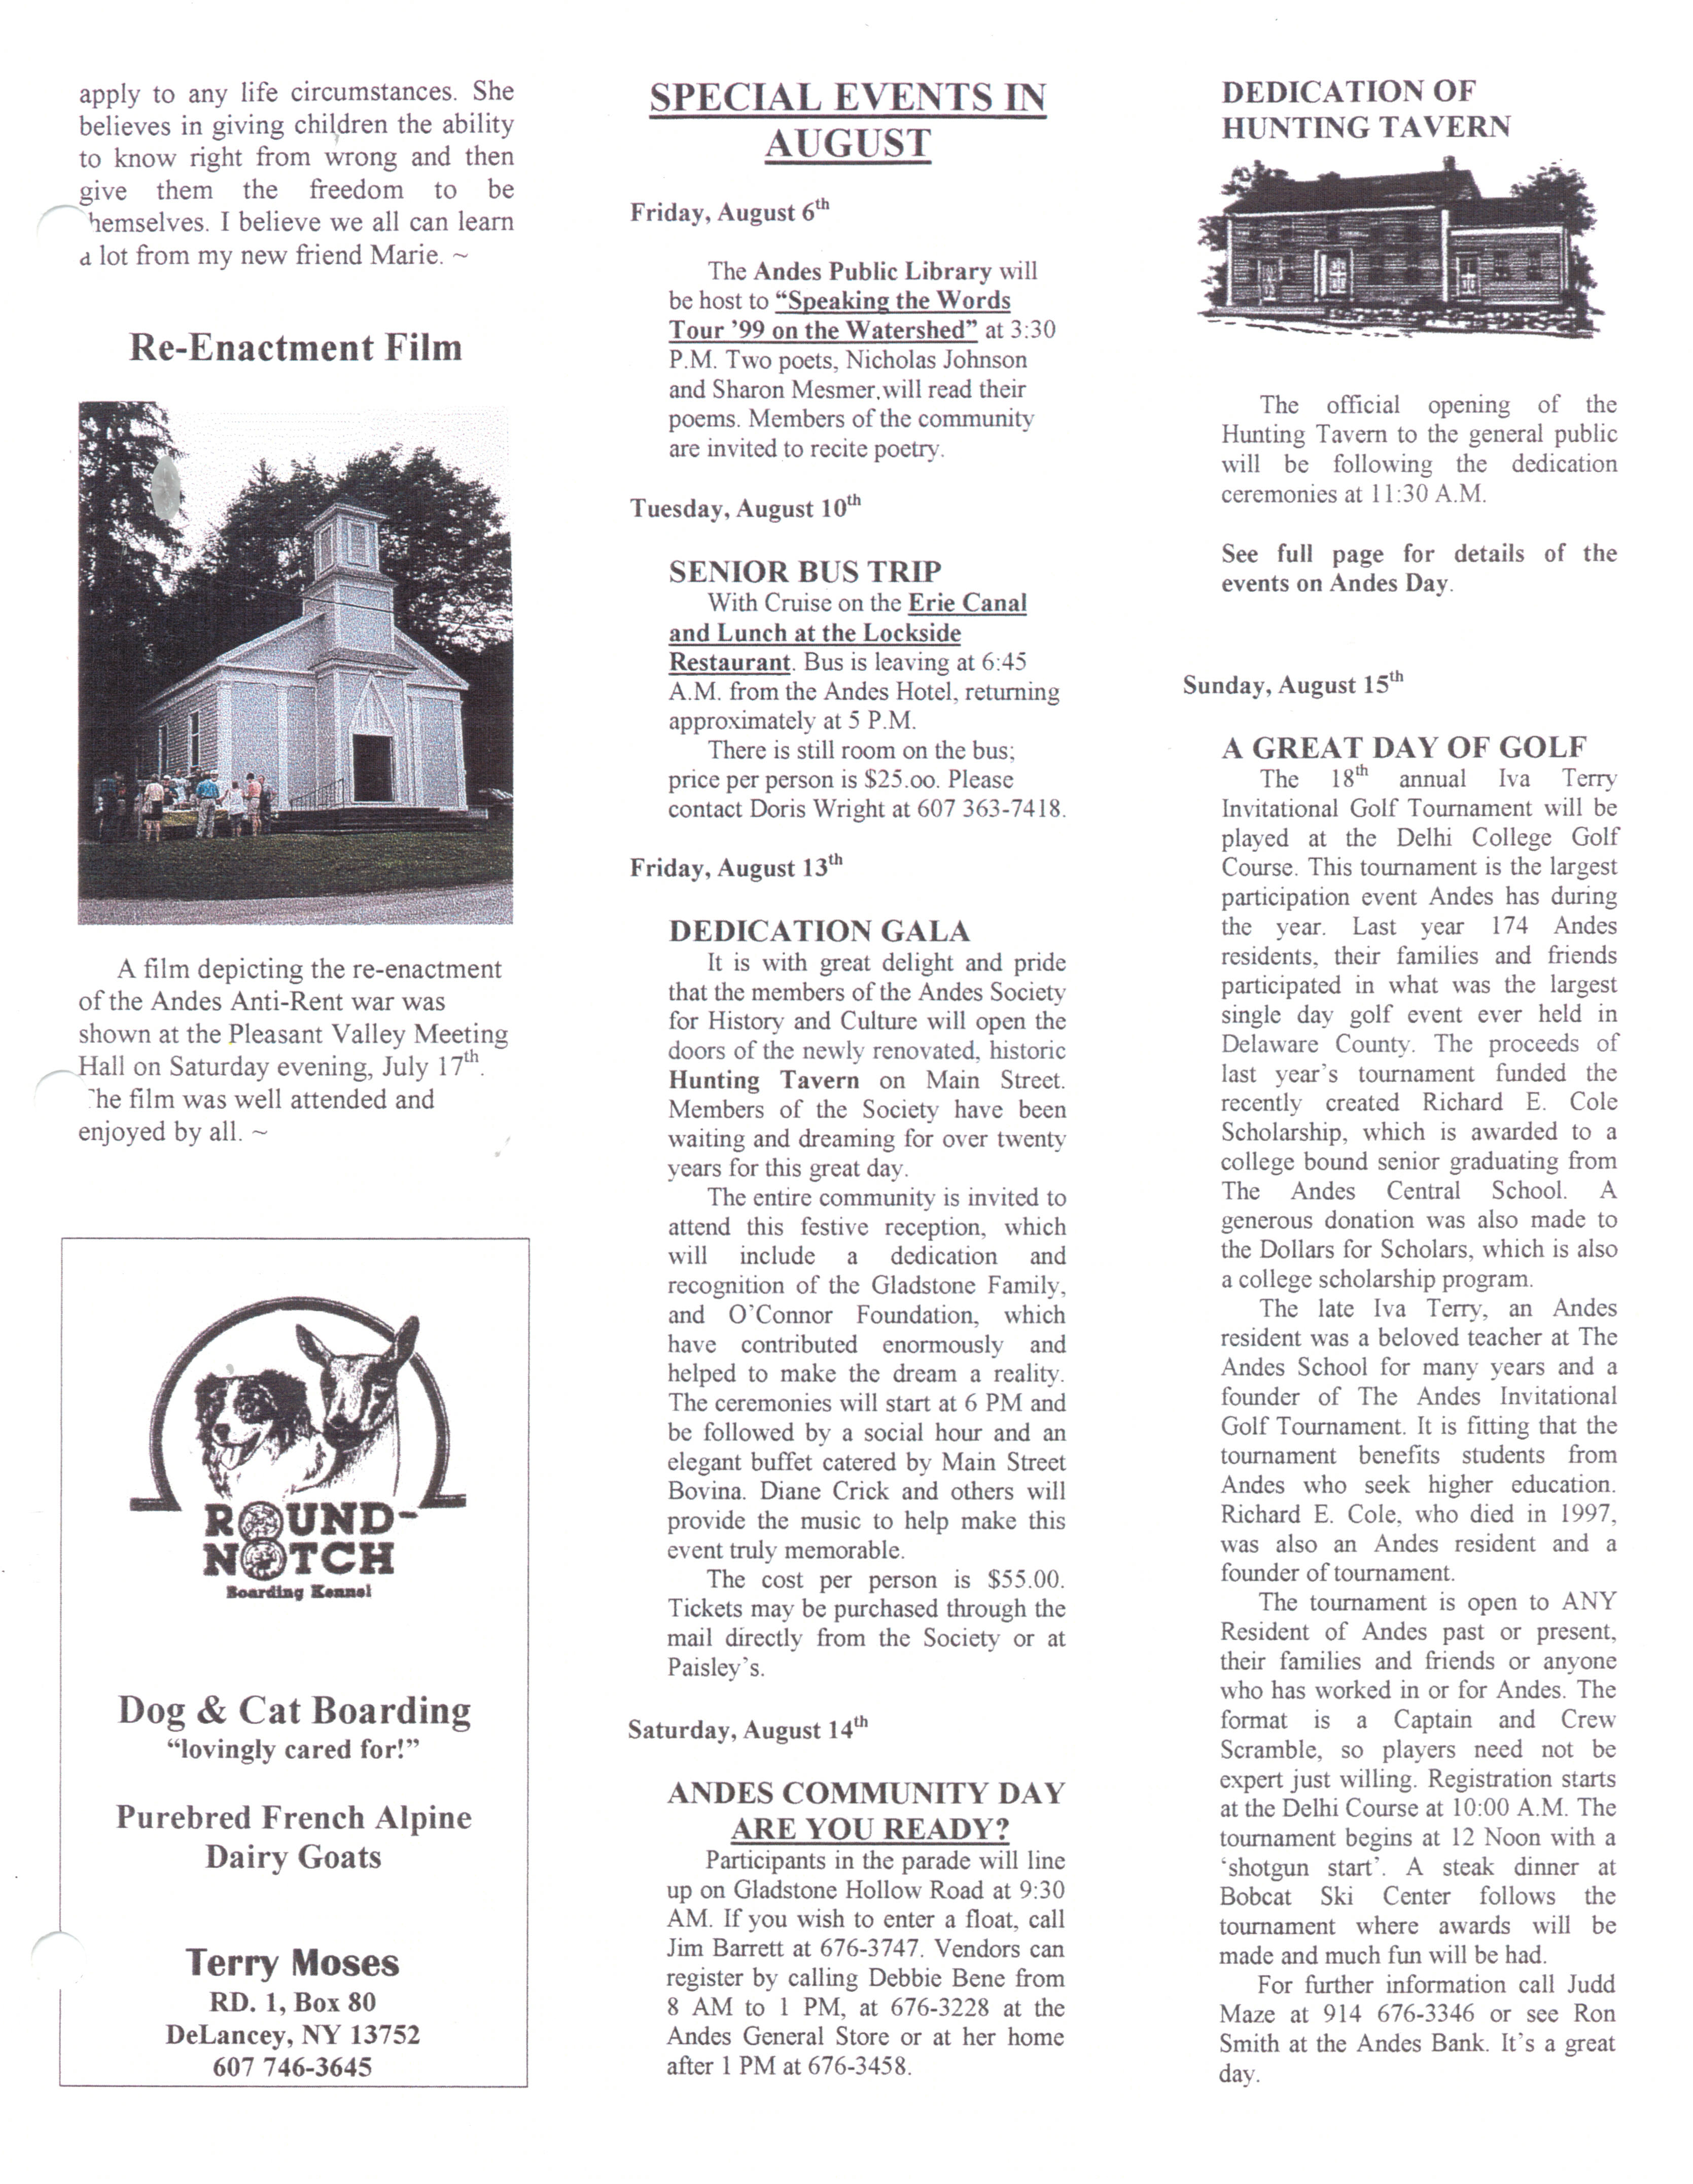 ANDES GAZETTE - August 1999 - Page 7